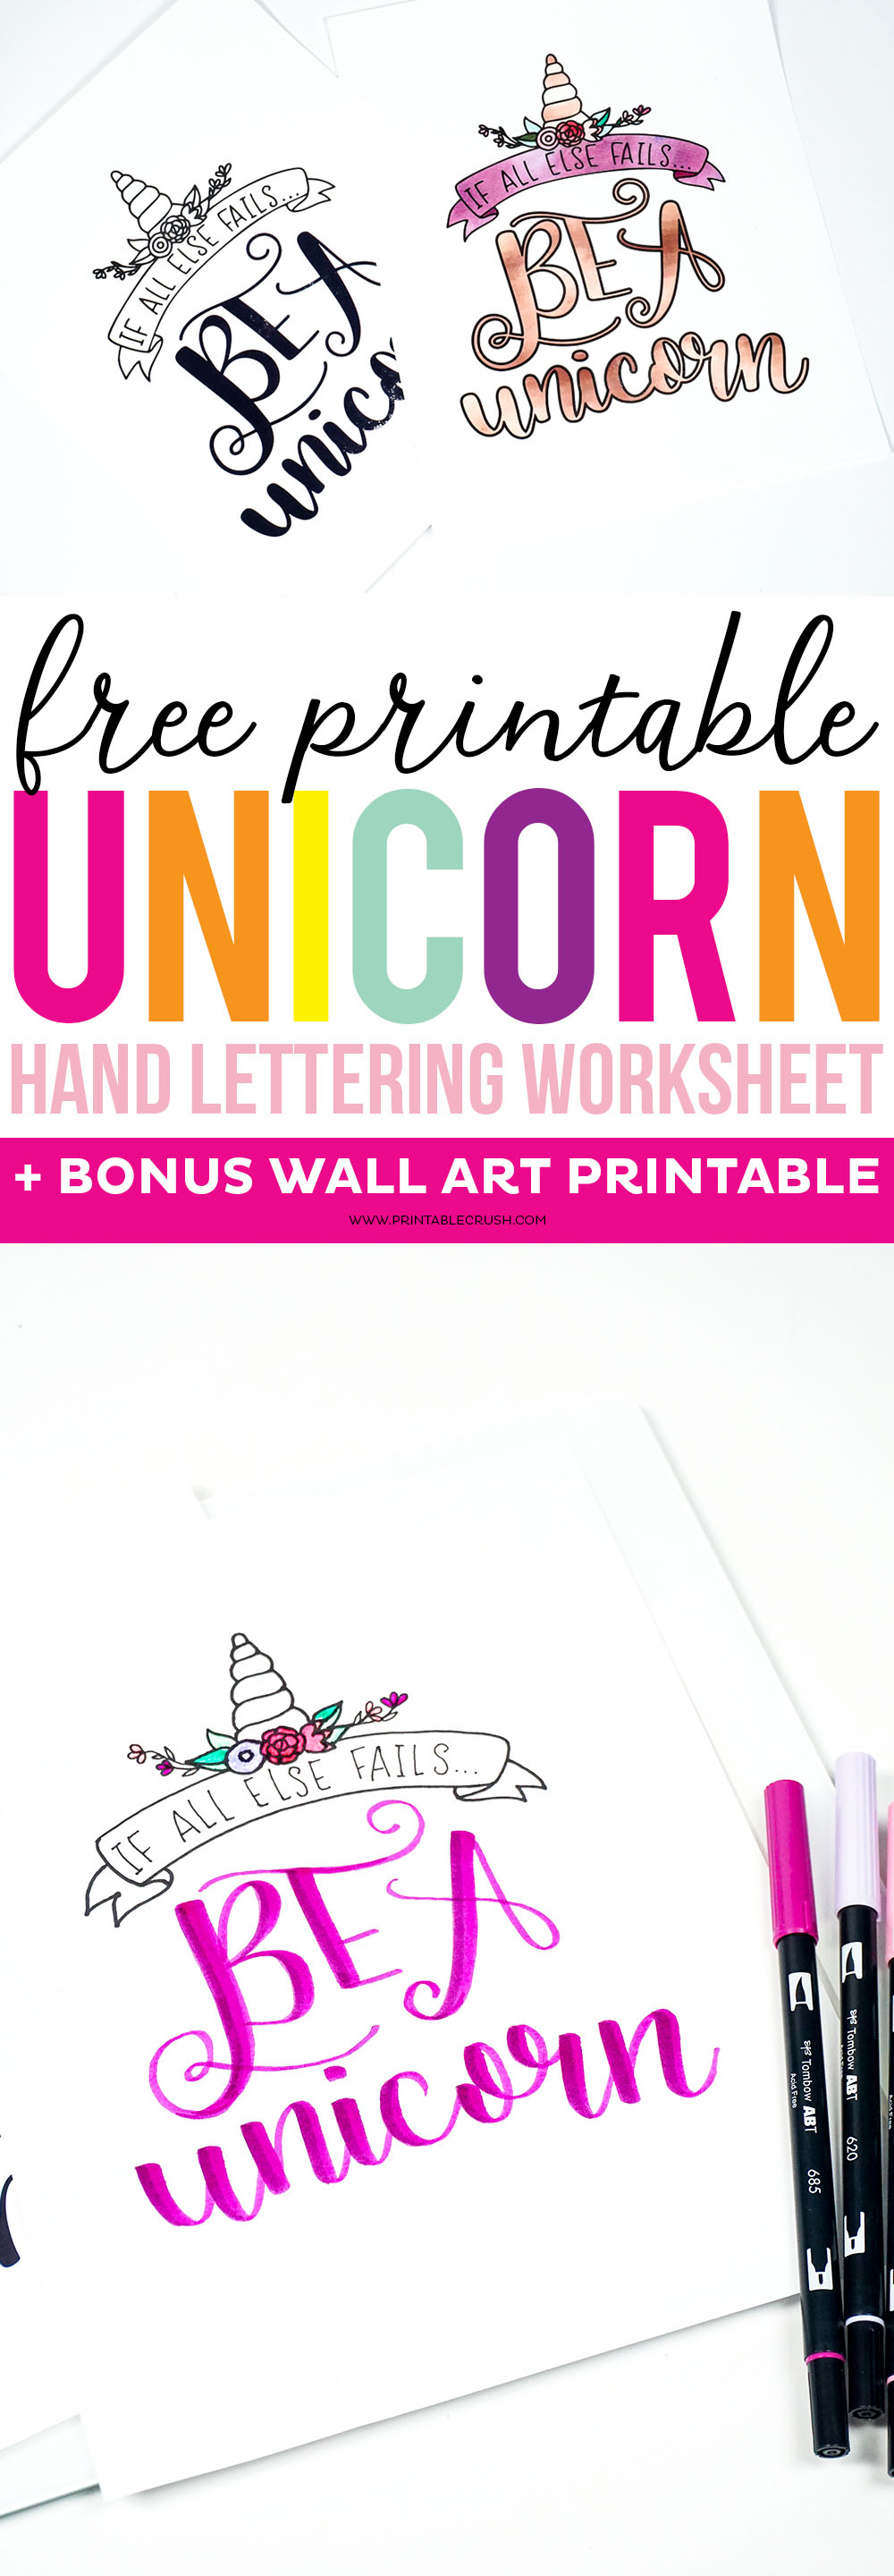 photograph regarding Printable Lettering named No cost Printable Unicorn Hand Lettering Worksheet and Wall Artwork